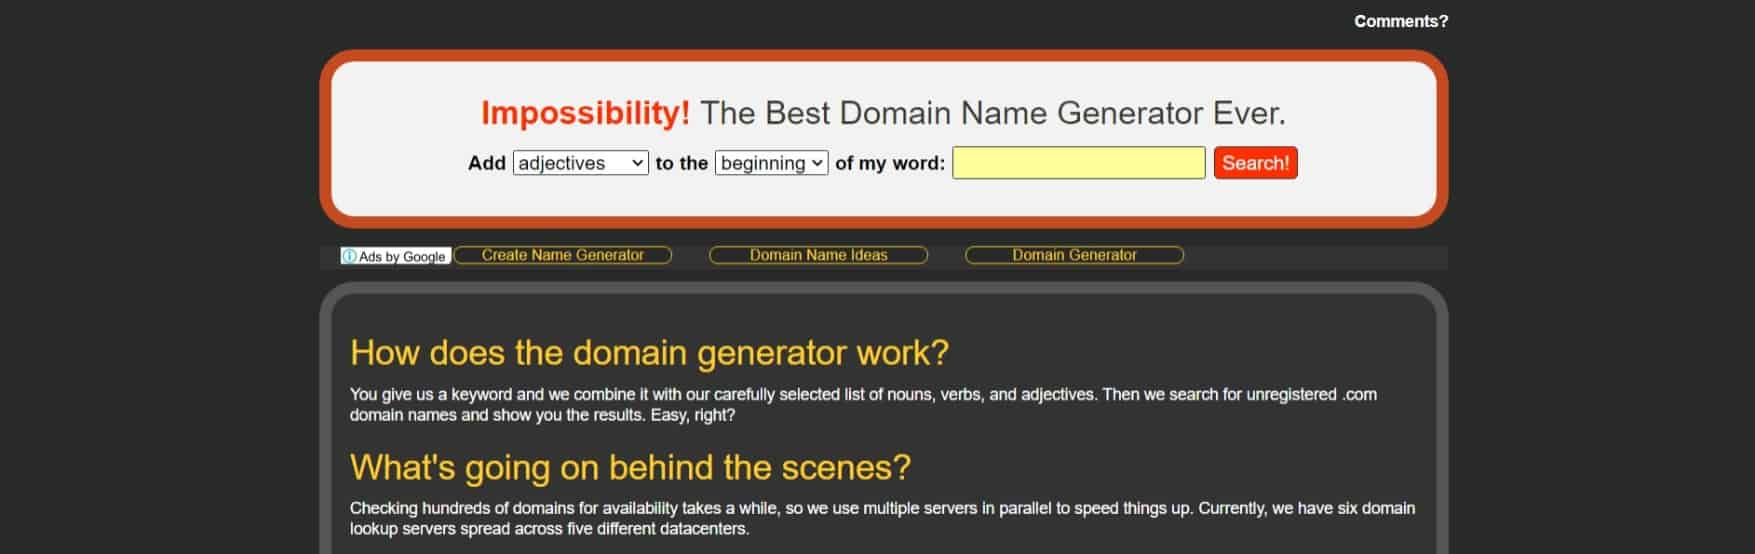 Impossibility!: The Best Domain Name Generator Ever